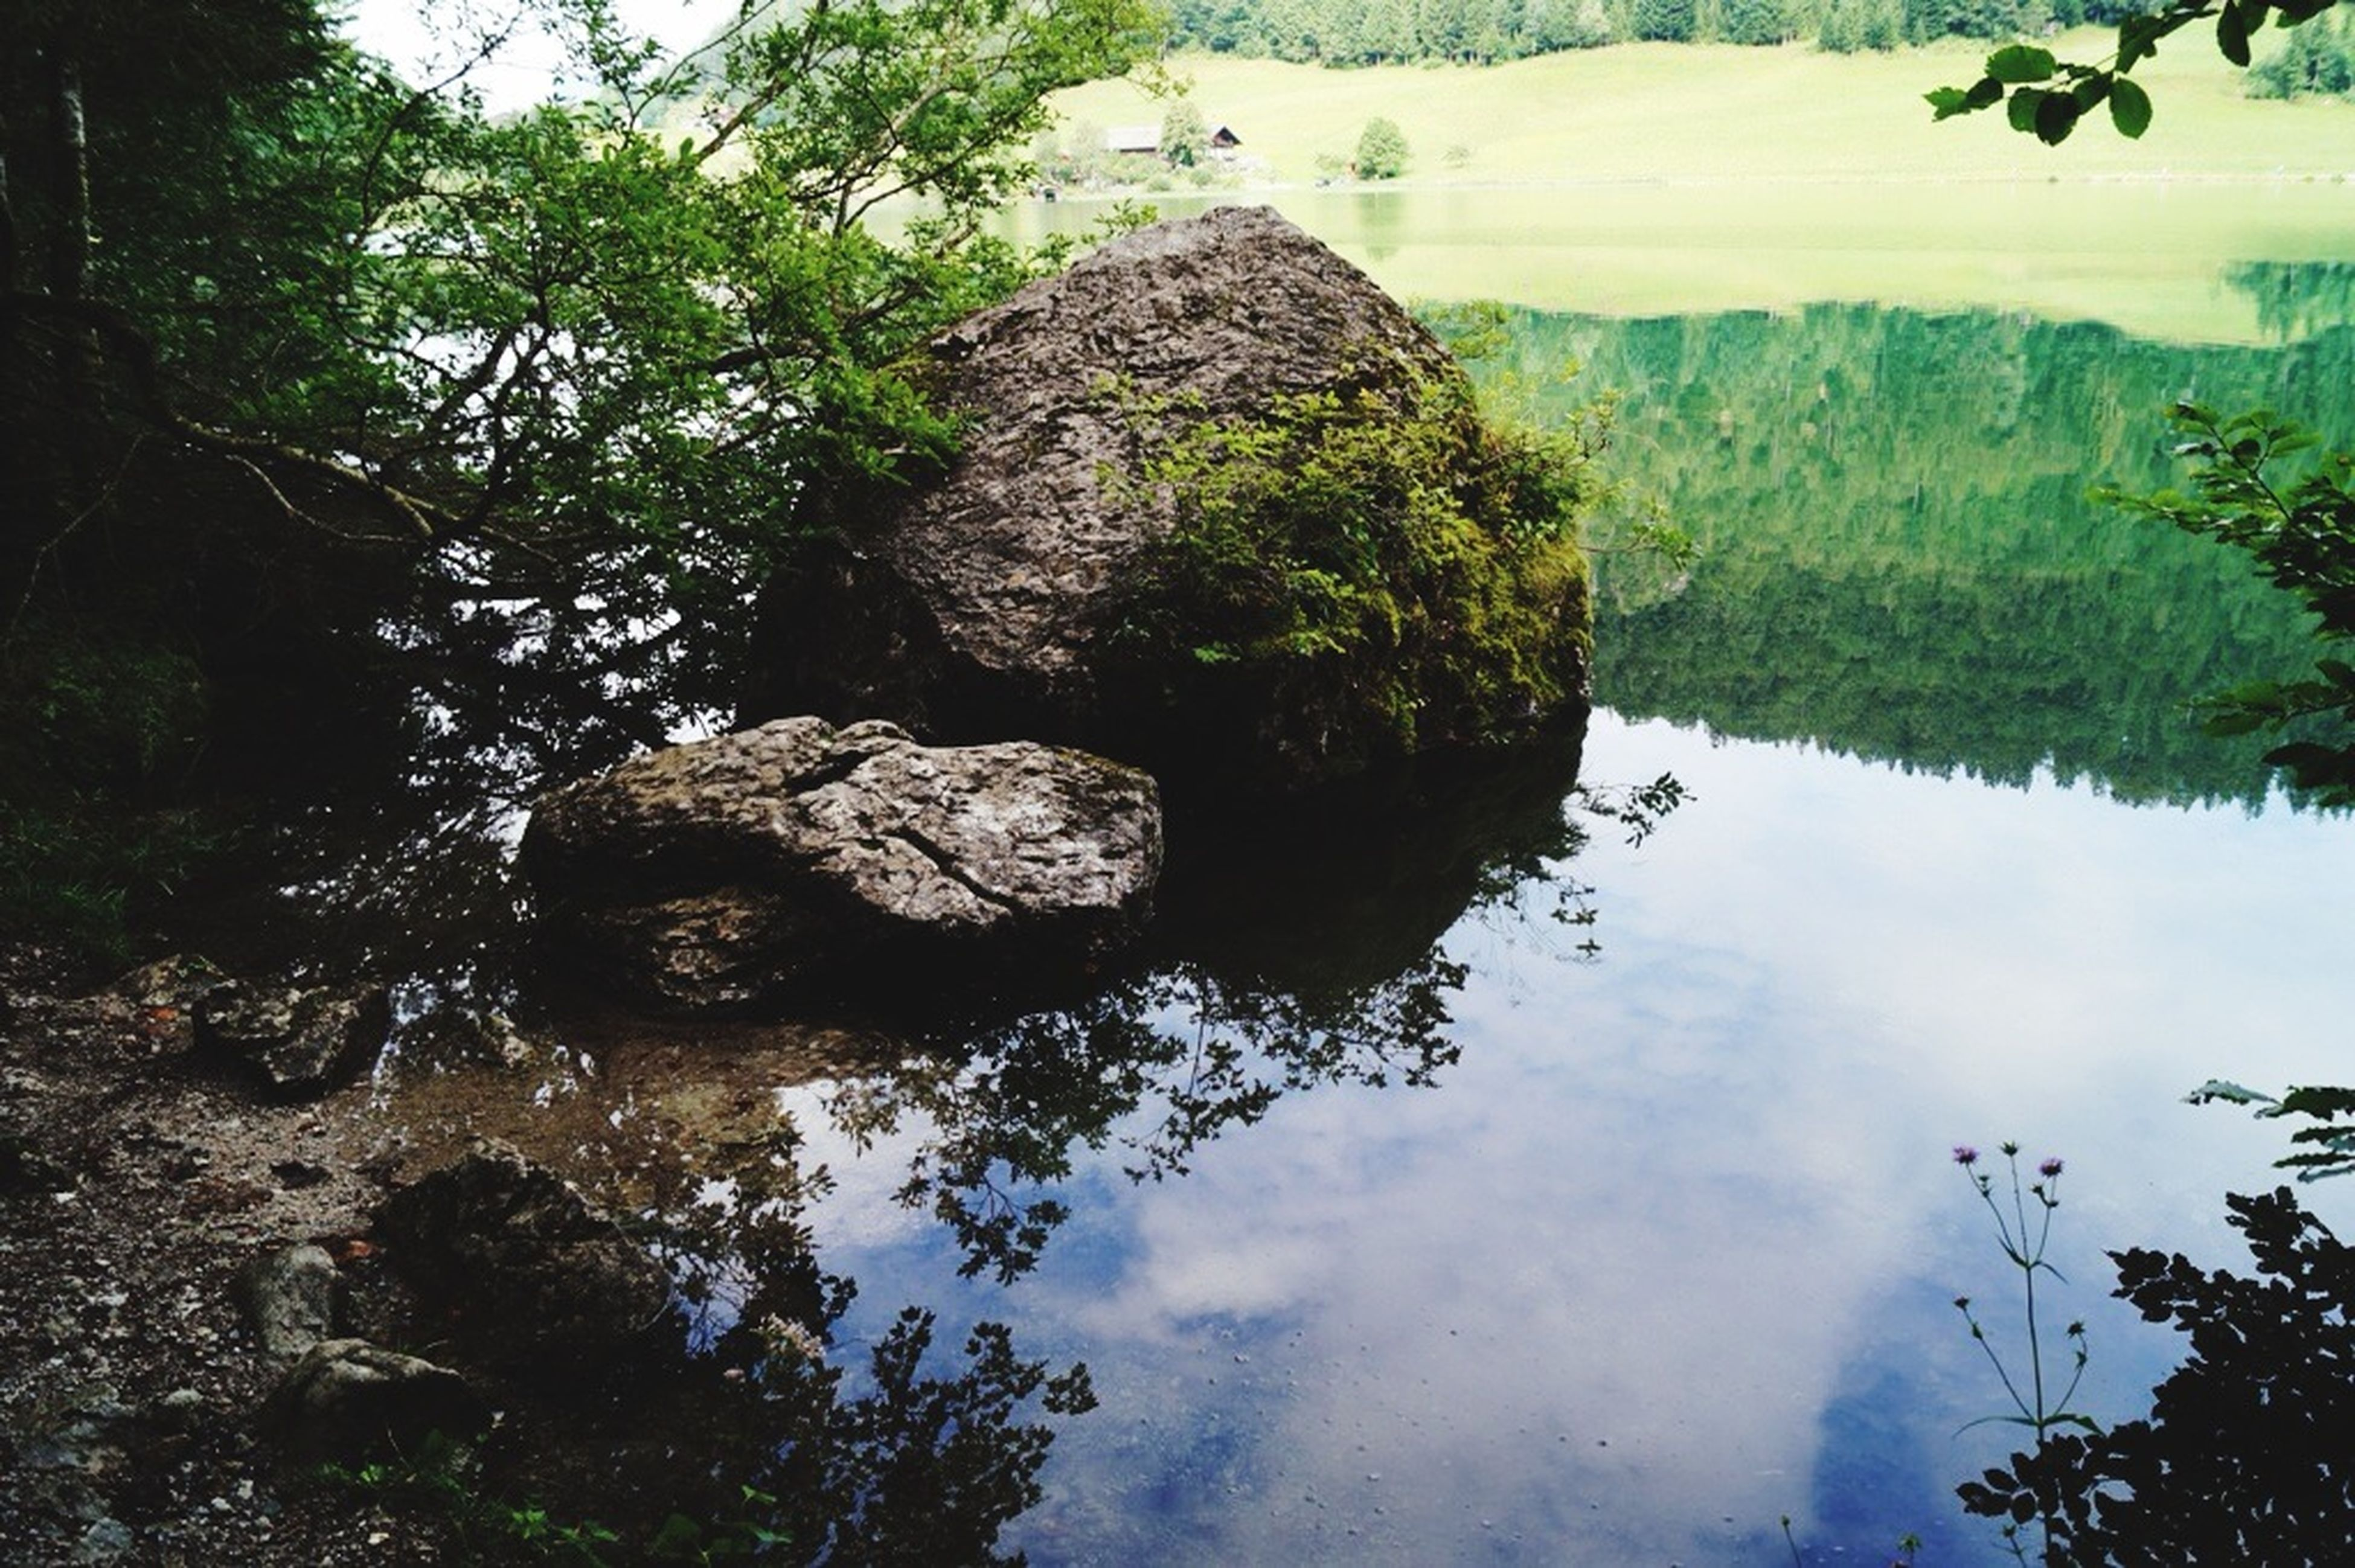 water, reflection, tranquility, tree, tranquil scene, scenics, nature, lake, beauty in nature, rock - object, sky, non-urban scene, day, idyllic, standing water, outdoors, river, waterfront, rock formation, no people